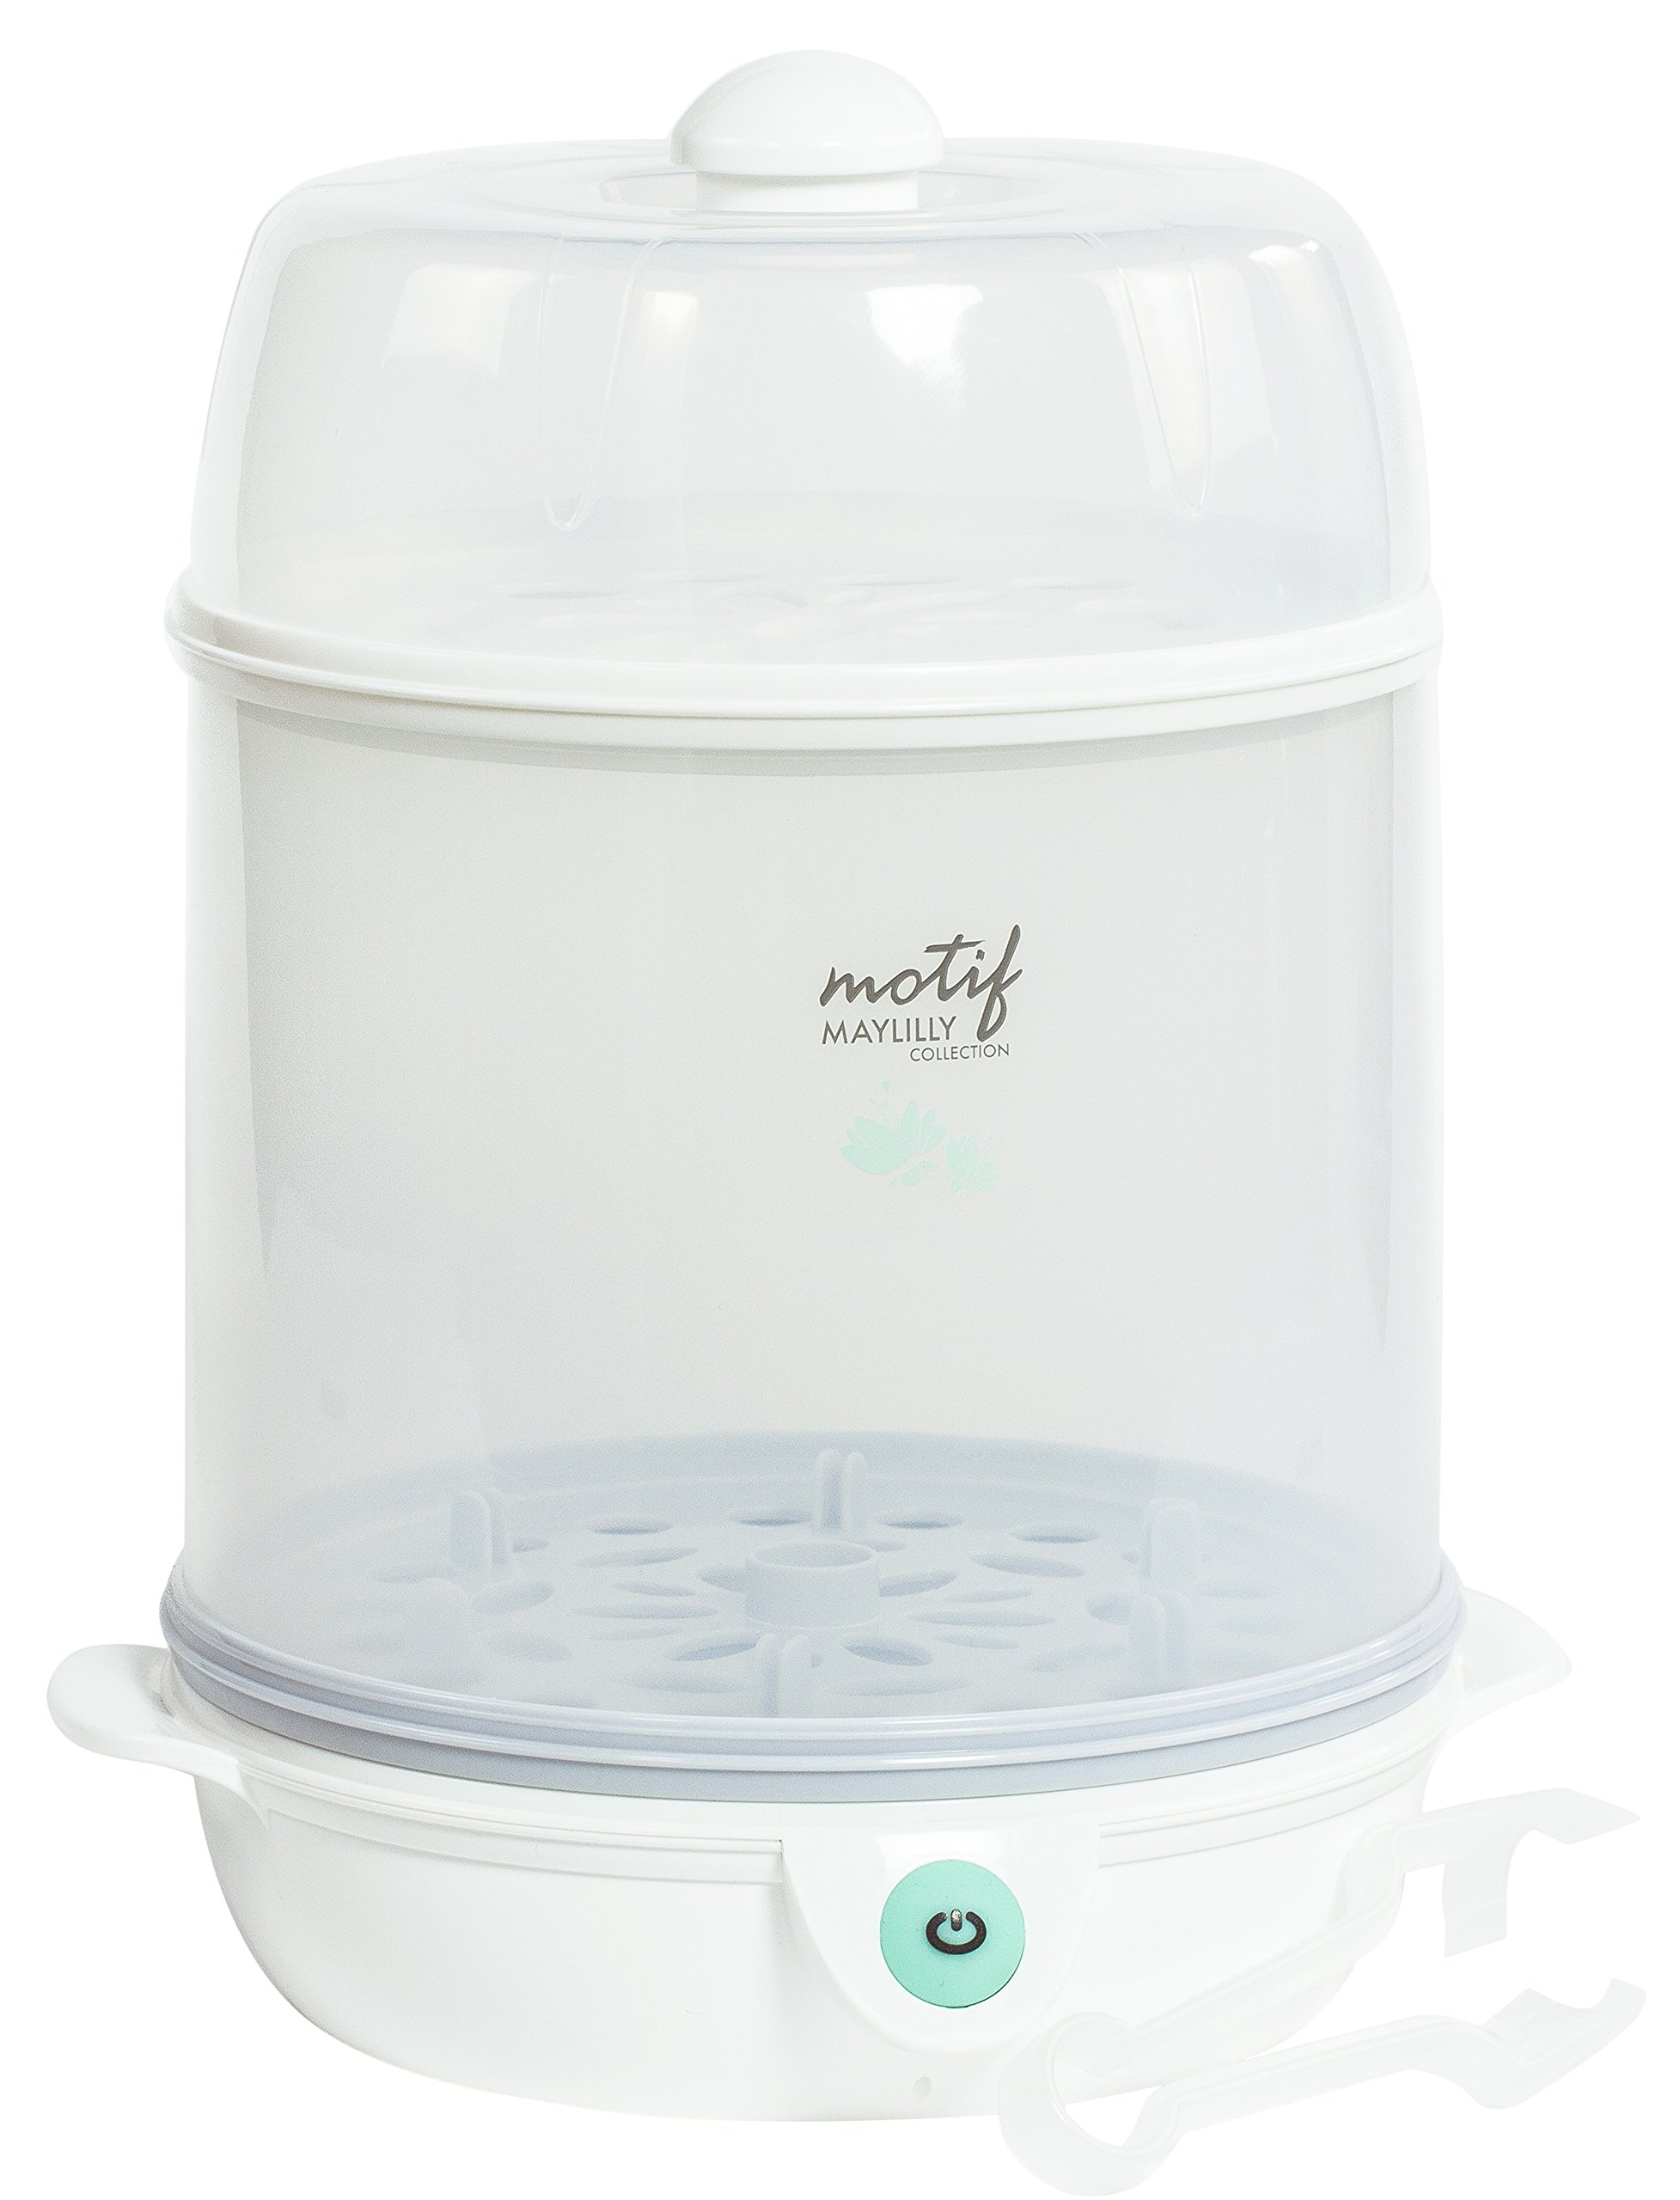 Motif Maylilly Collection ''Trumpetlilly'' Electric Steam Bottle Sterilizer by Motif Medical